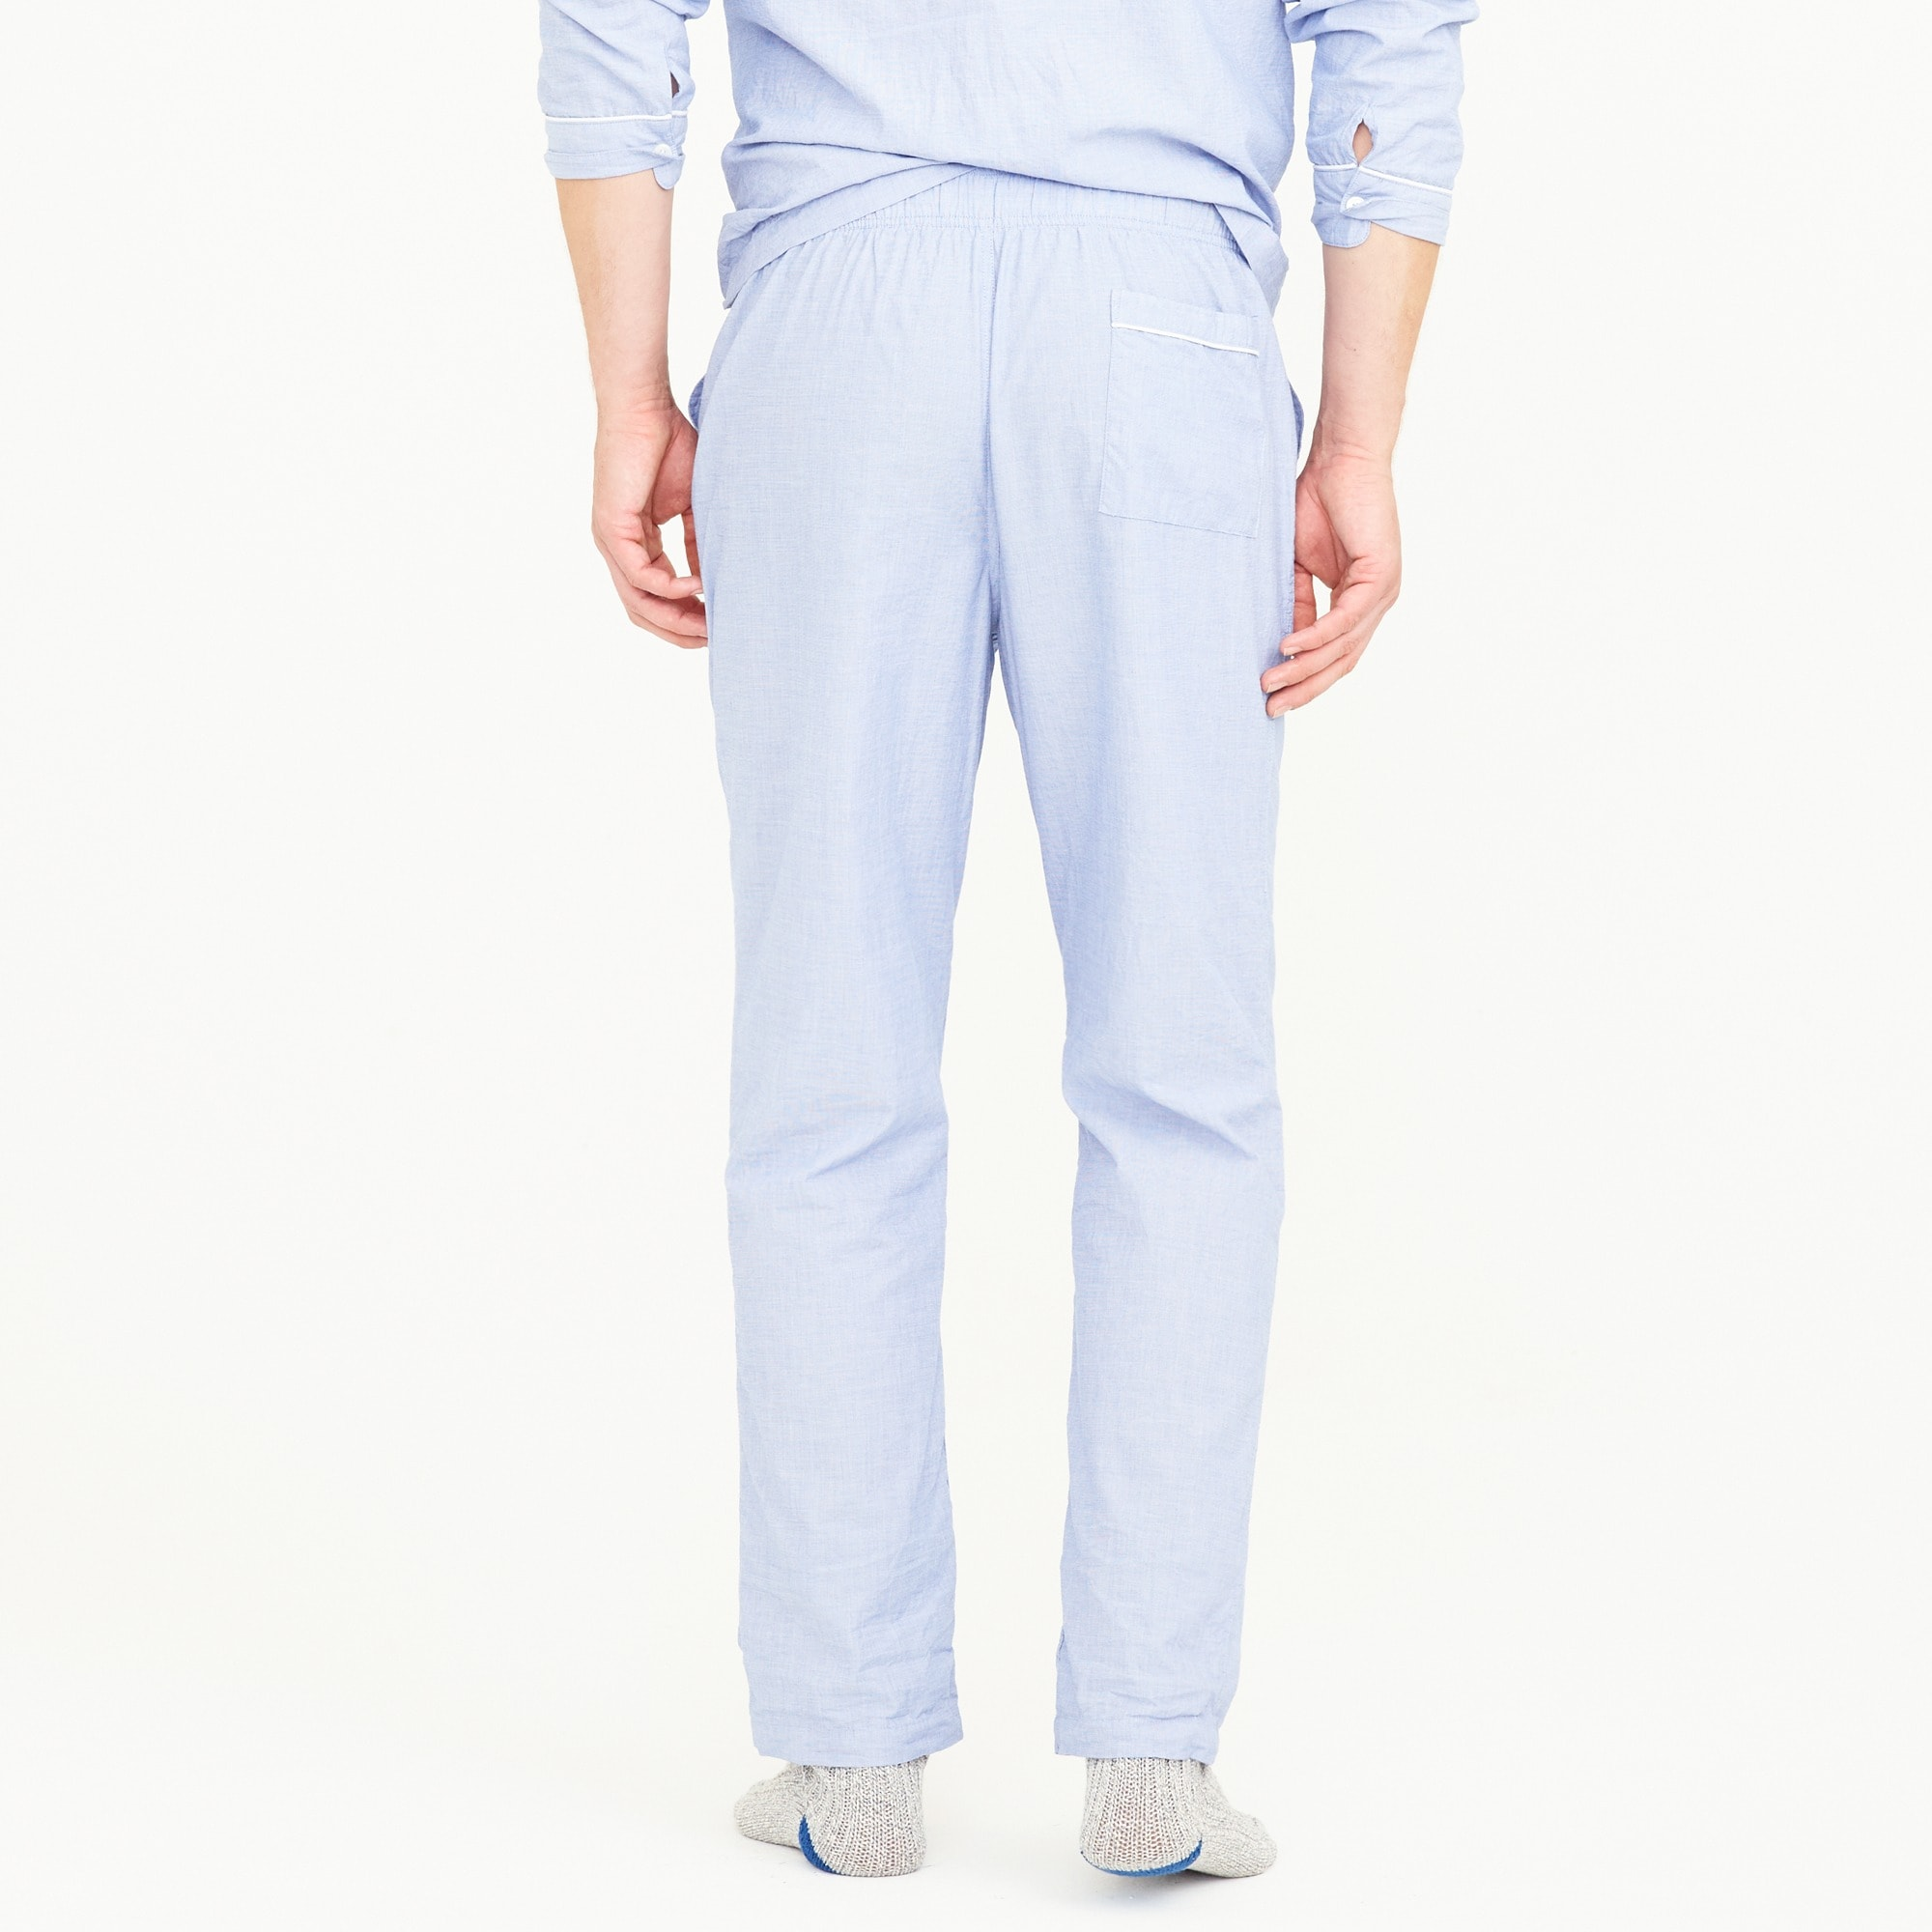 End-on-end cotton pajama pant